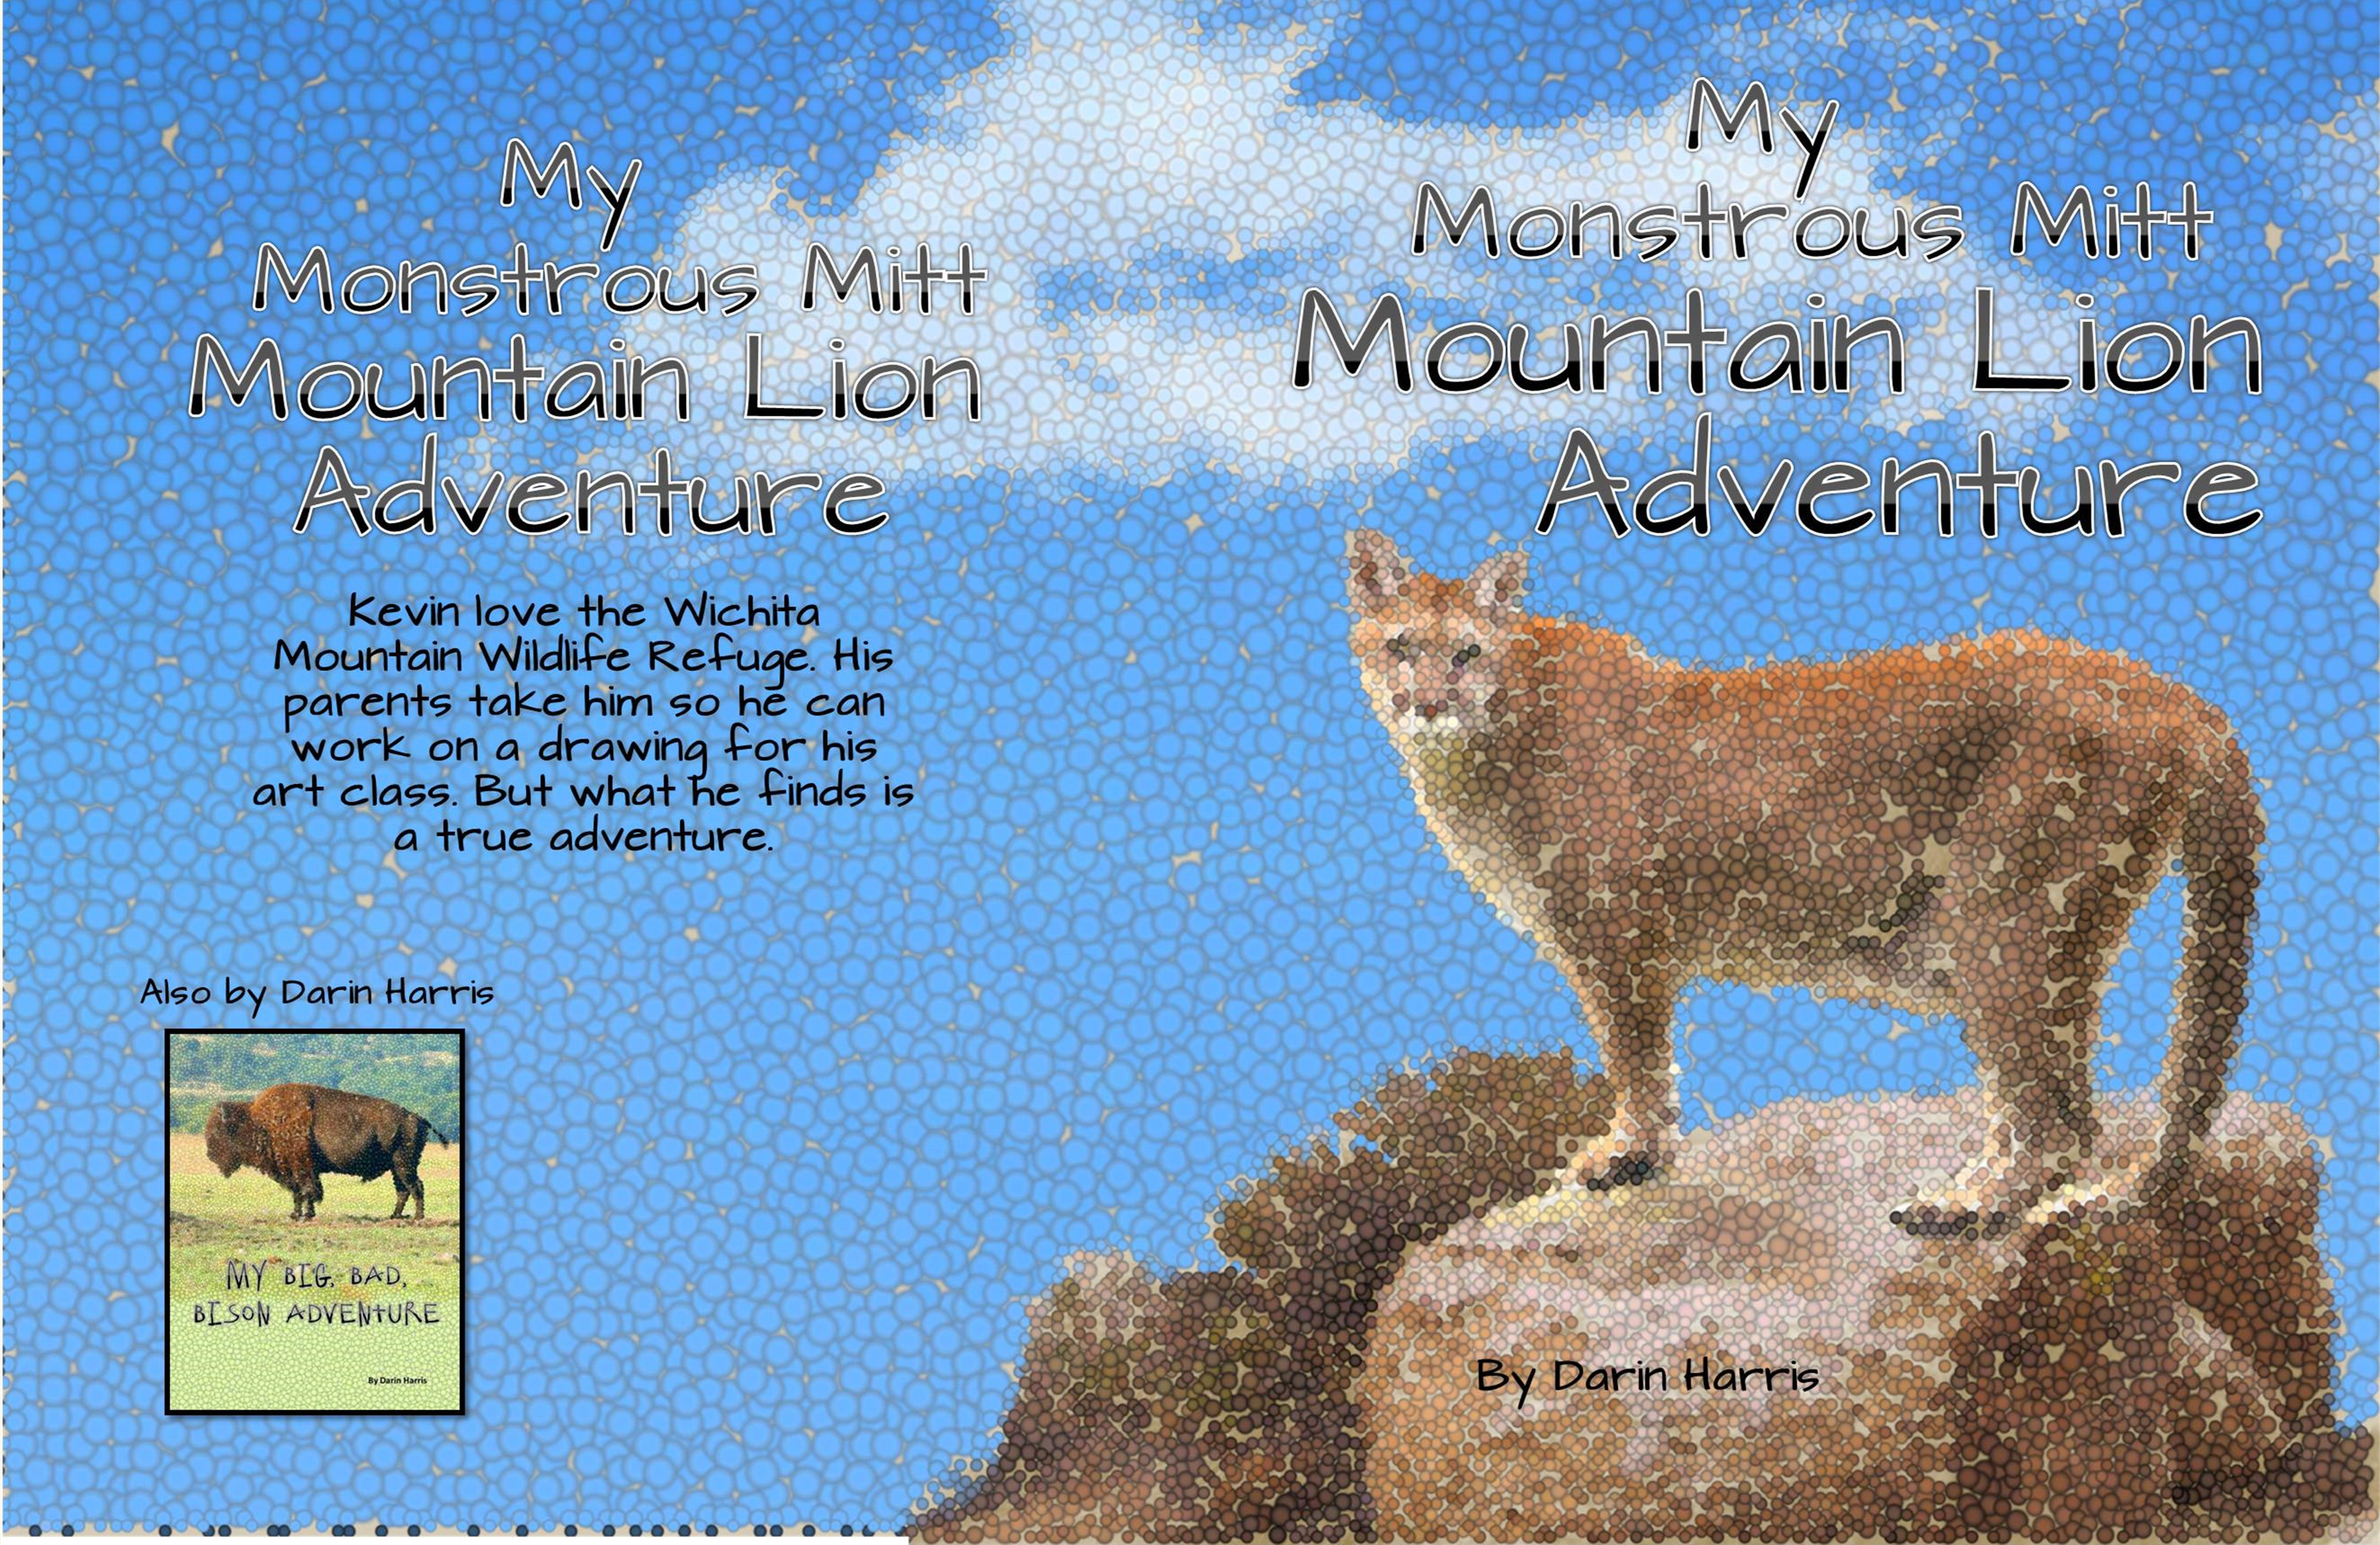 My Monstrous Mitt Mountain Lion Adventure cover image